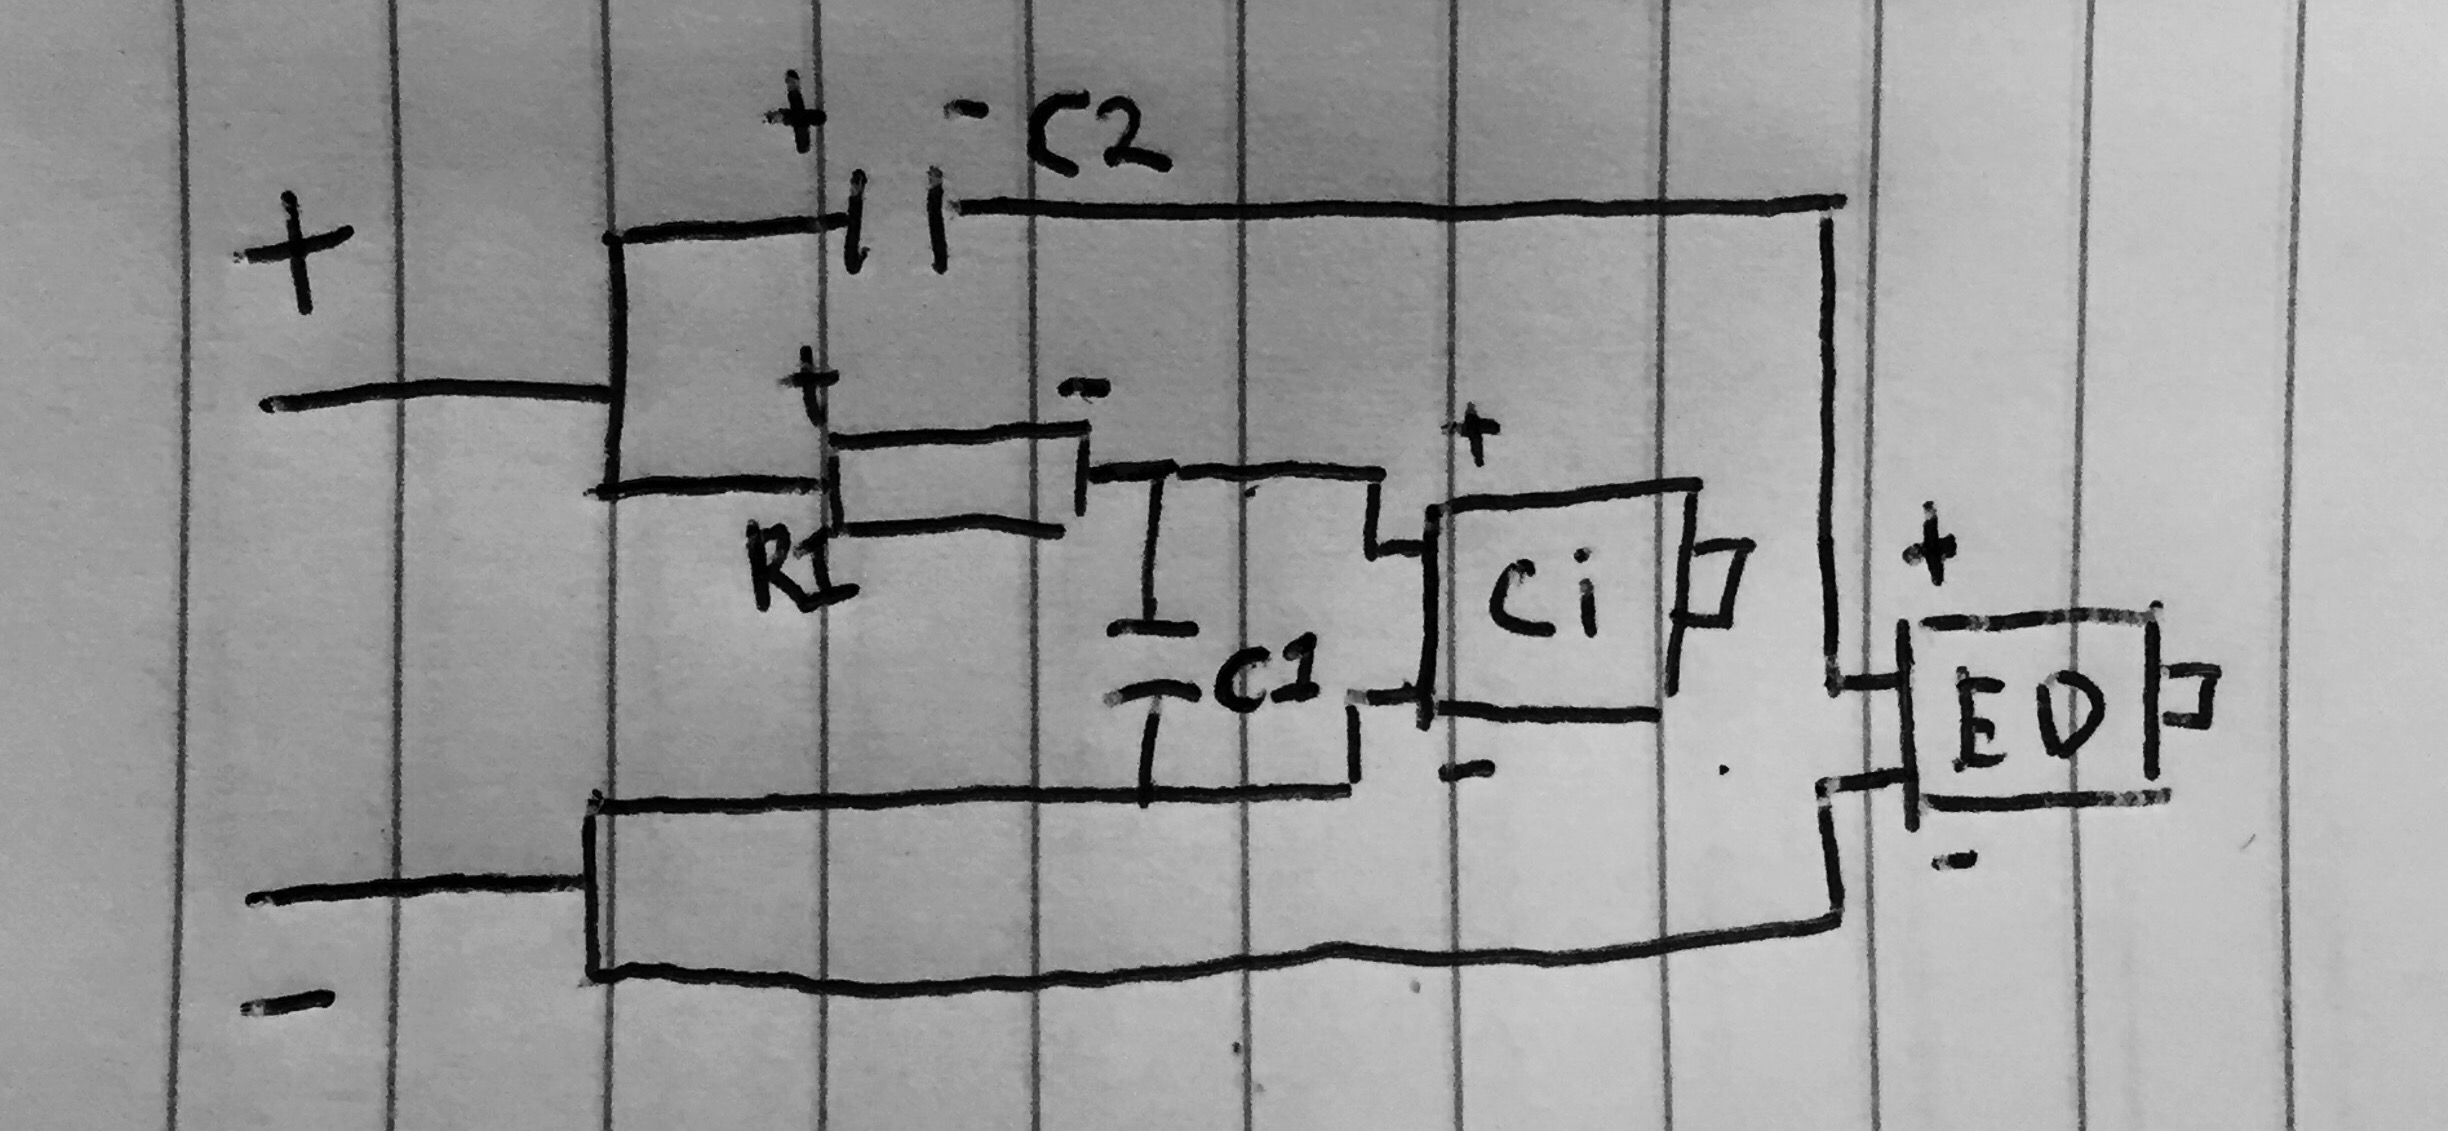 Home Made Iems Page 347 Headphone Reviews And Discussion Head Highpass Hp Active Filter For 1khz Circuit Diagram This Is Just A Rough I Drew Up Know There Already Few Crossover Circuits Out Can Follow But After Reading Into The Theory Have